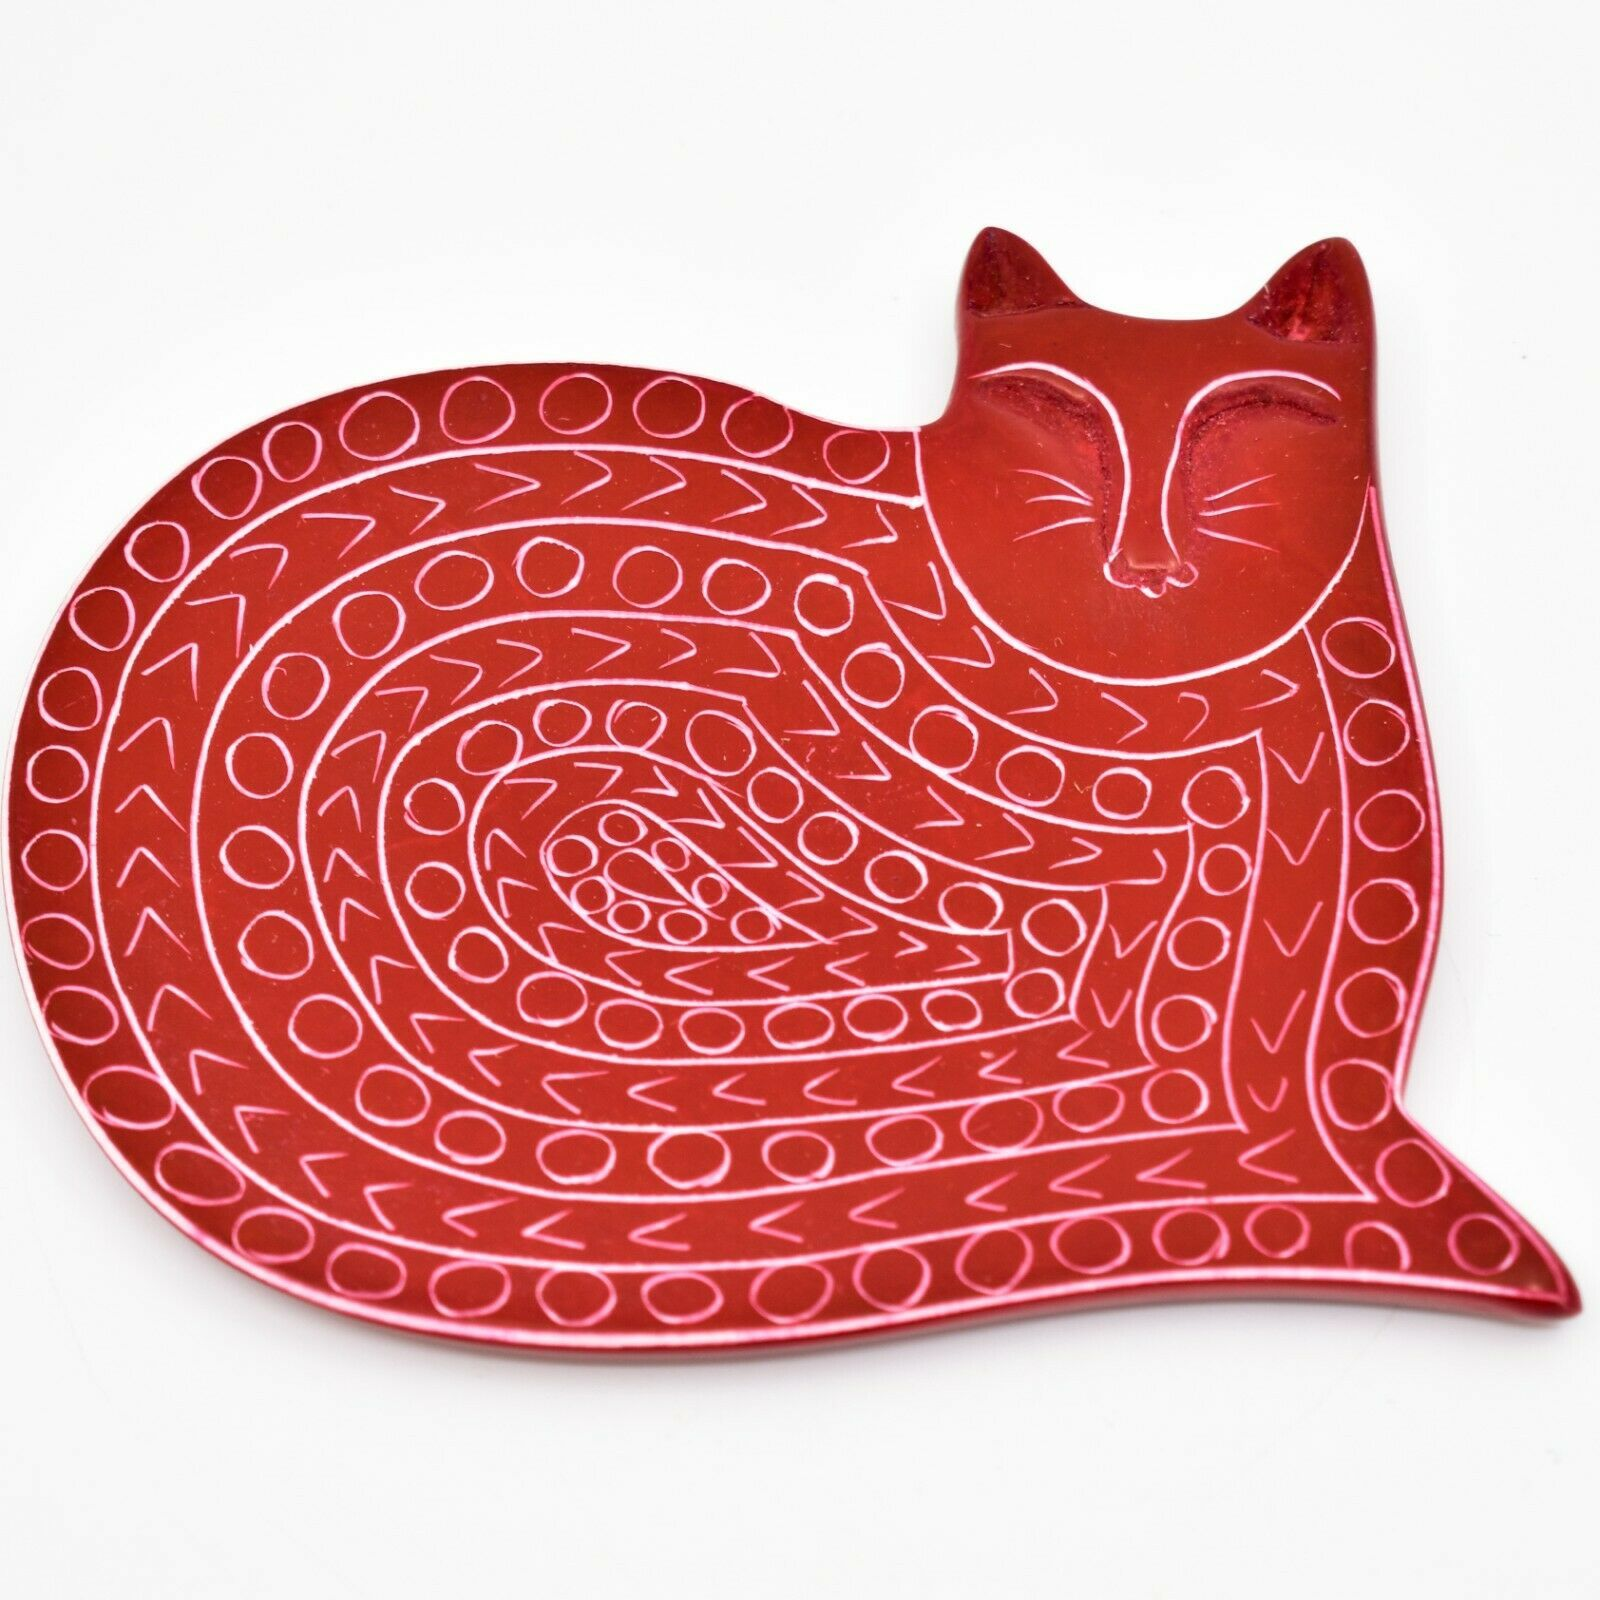 Vaneal Group Hand Carved Kisii Soapstone Red Sleeping Cat Trinket Dish Plate